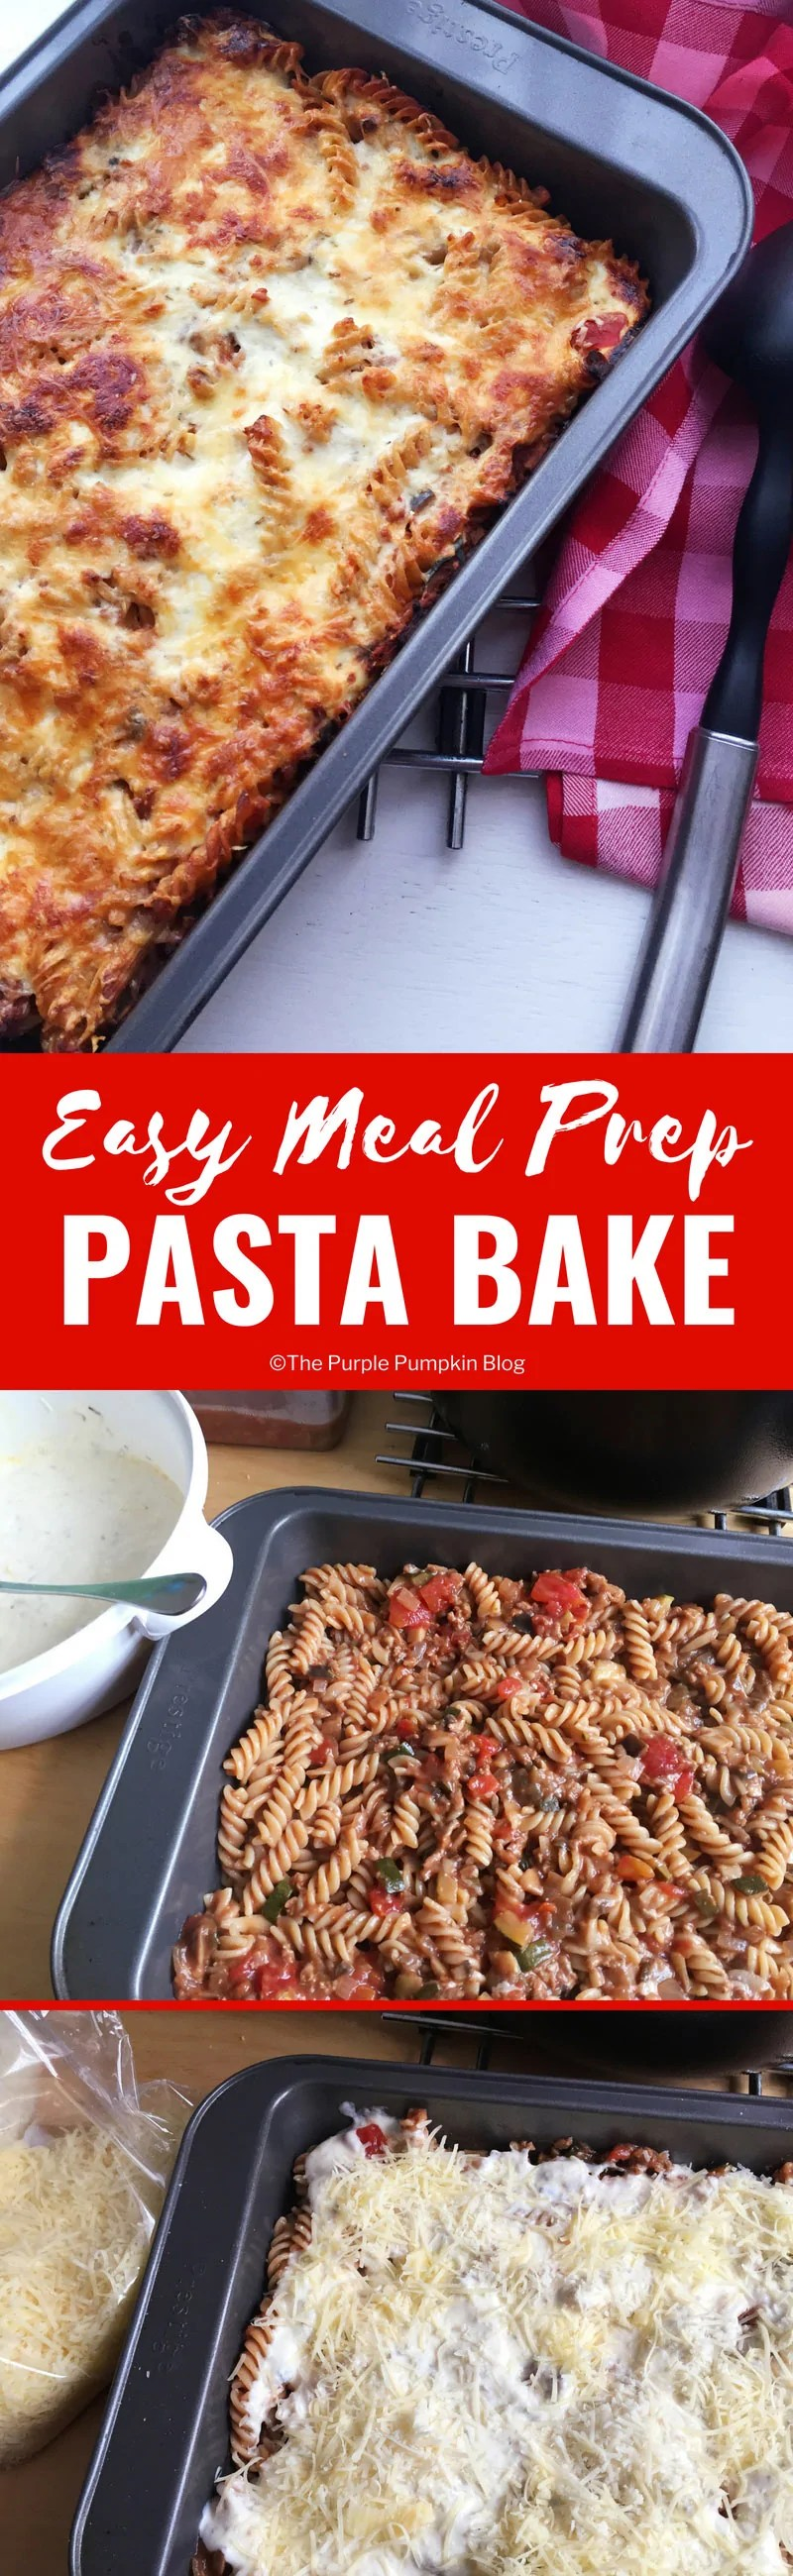 Meal prepping is awesome - you can save so much time, not to mention money by planning and prepping your meals in advance. Thismeal prep pasta bake is easy to make and can be kept in the fridge for 3-4 days, or frozen to use at a later time.